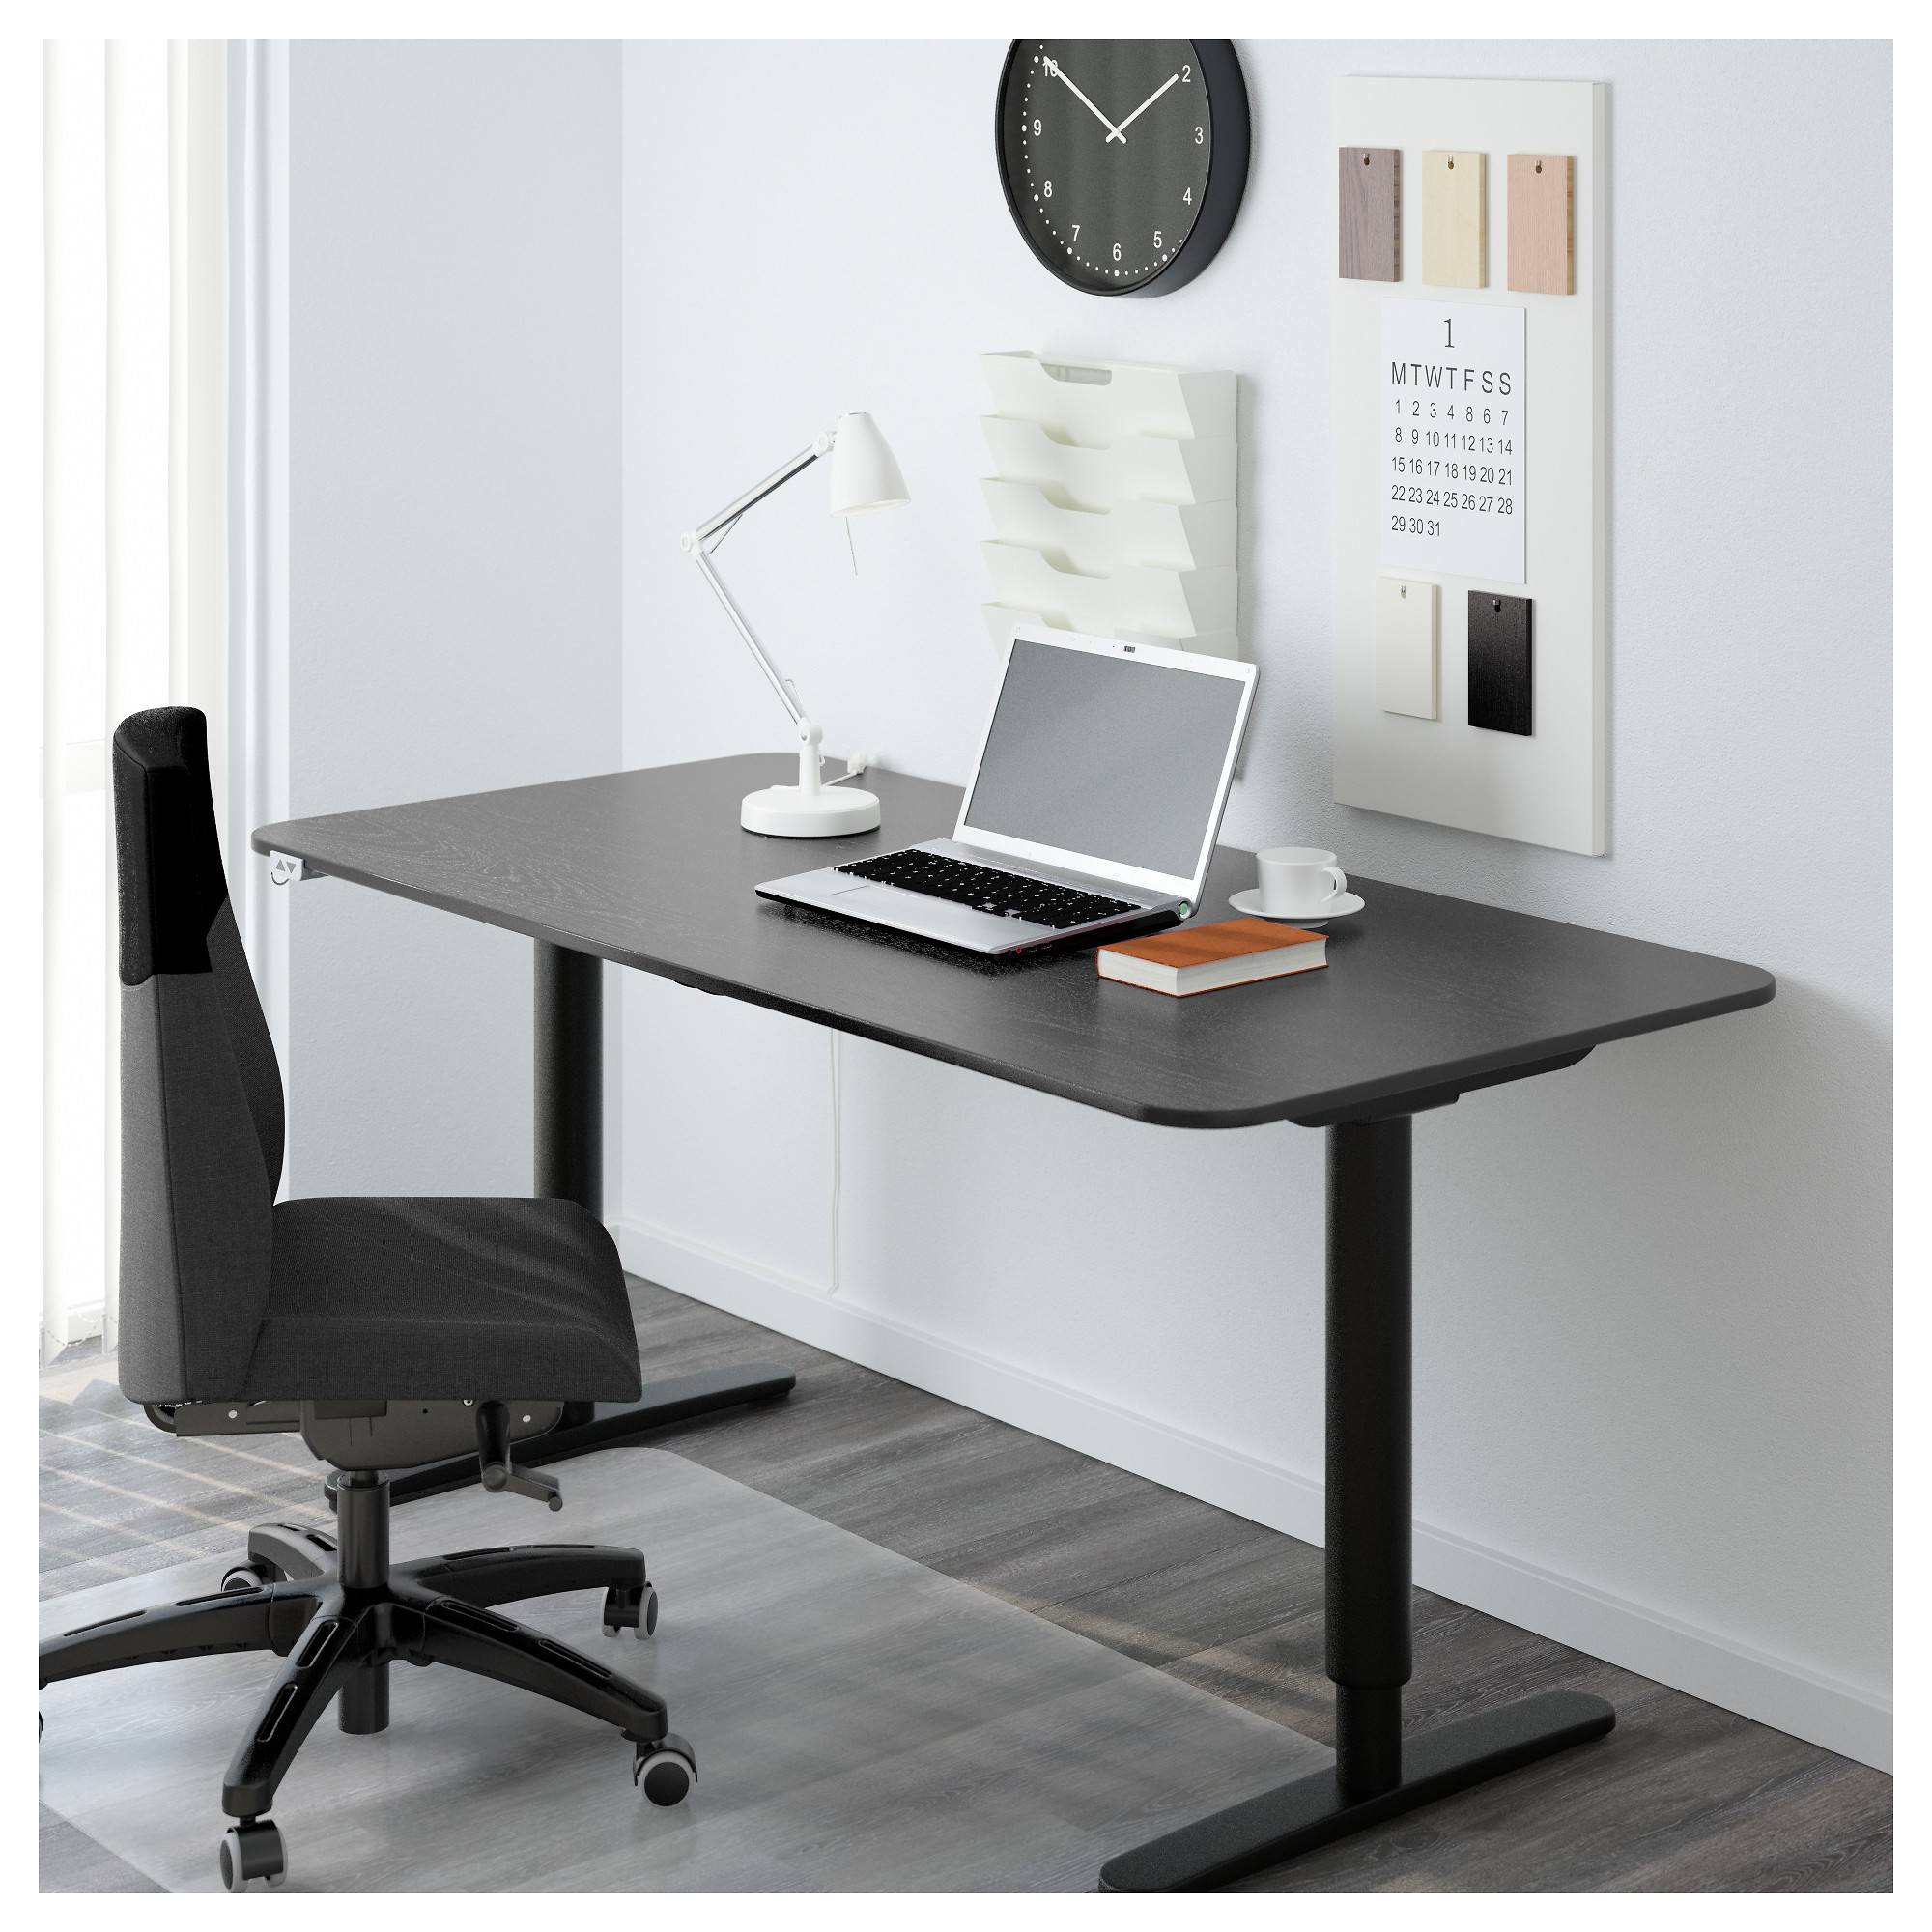 BEKANT Desk sitstand black brownwhite